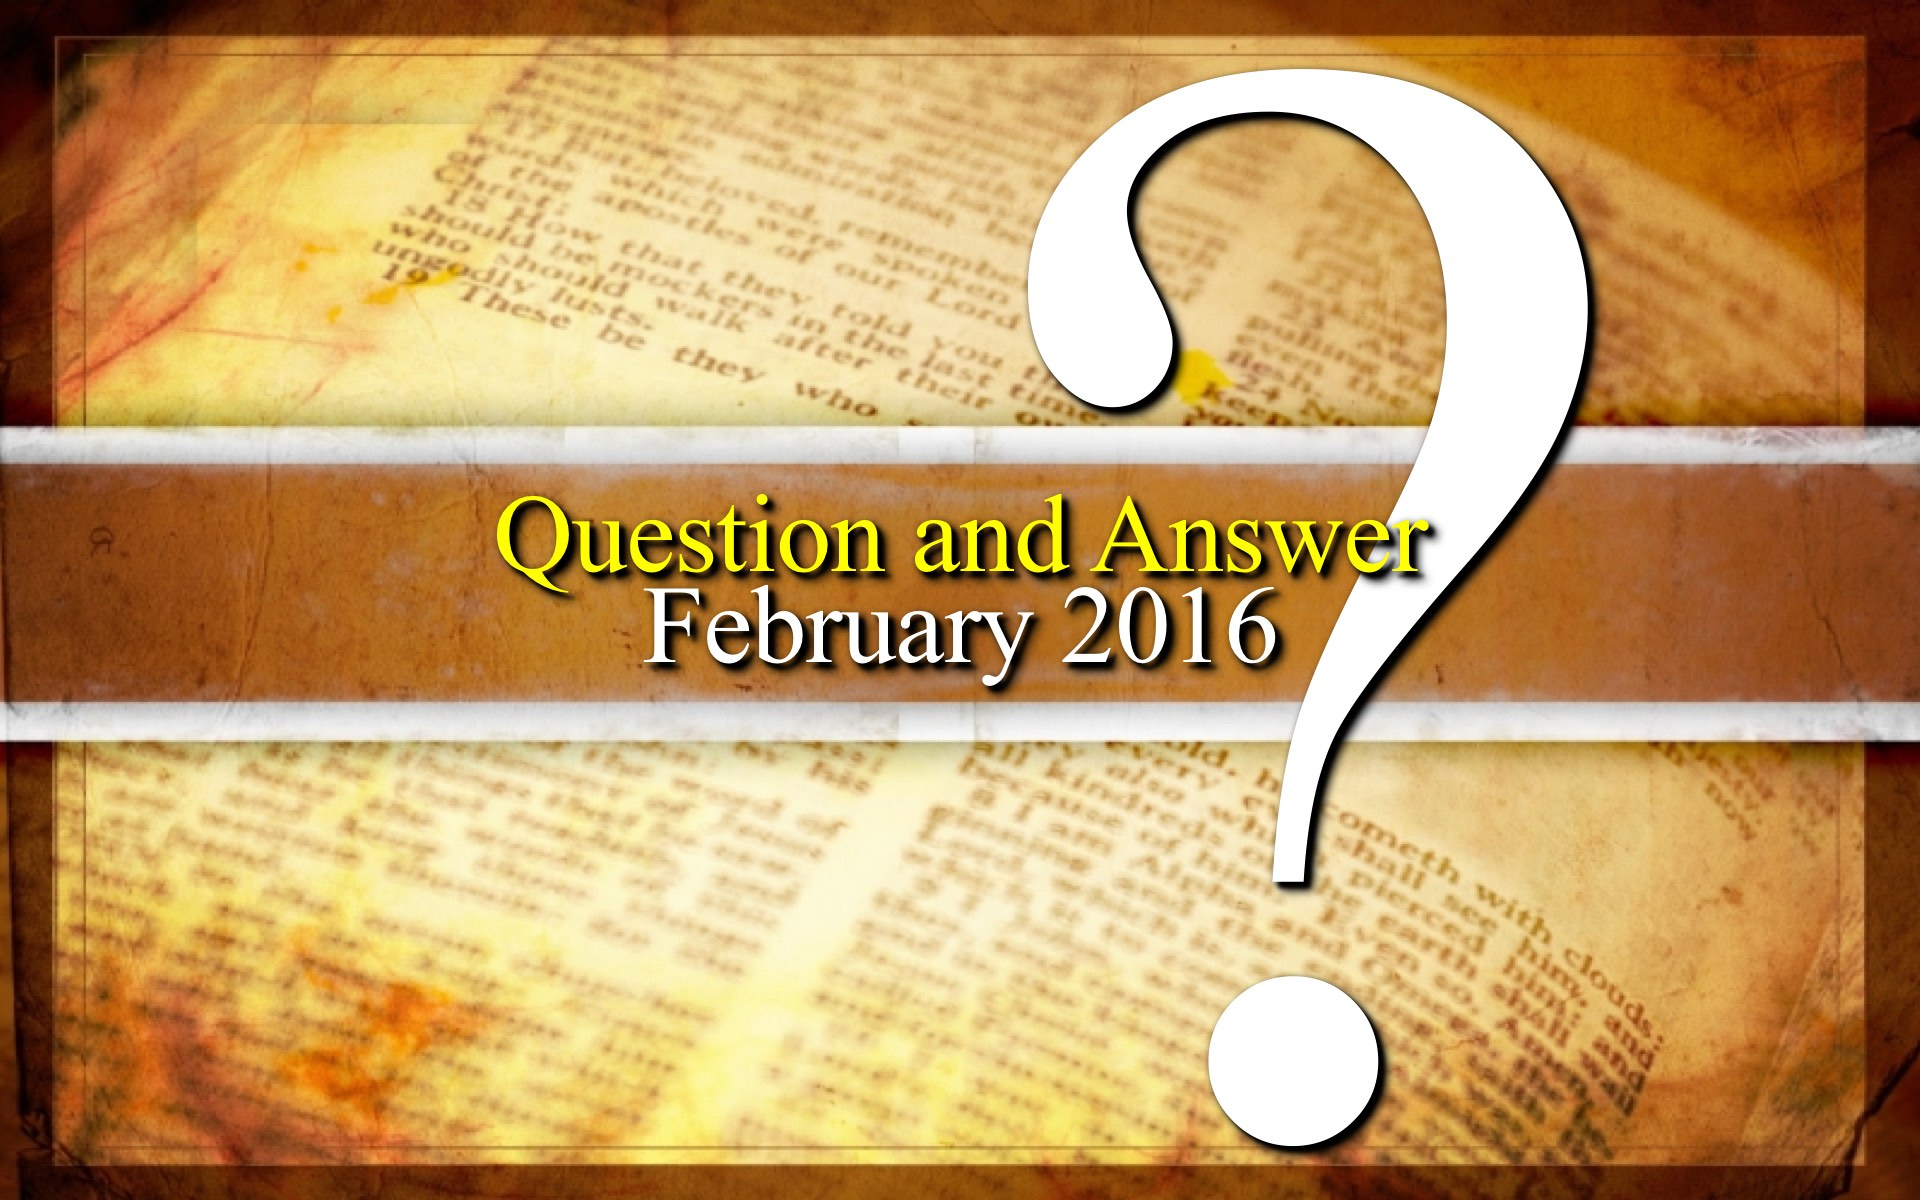 February 2016 Question and Answer